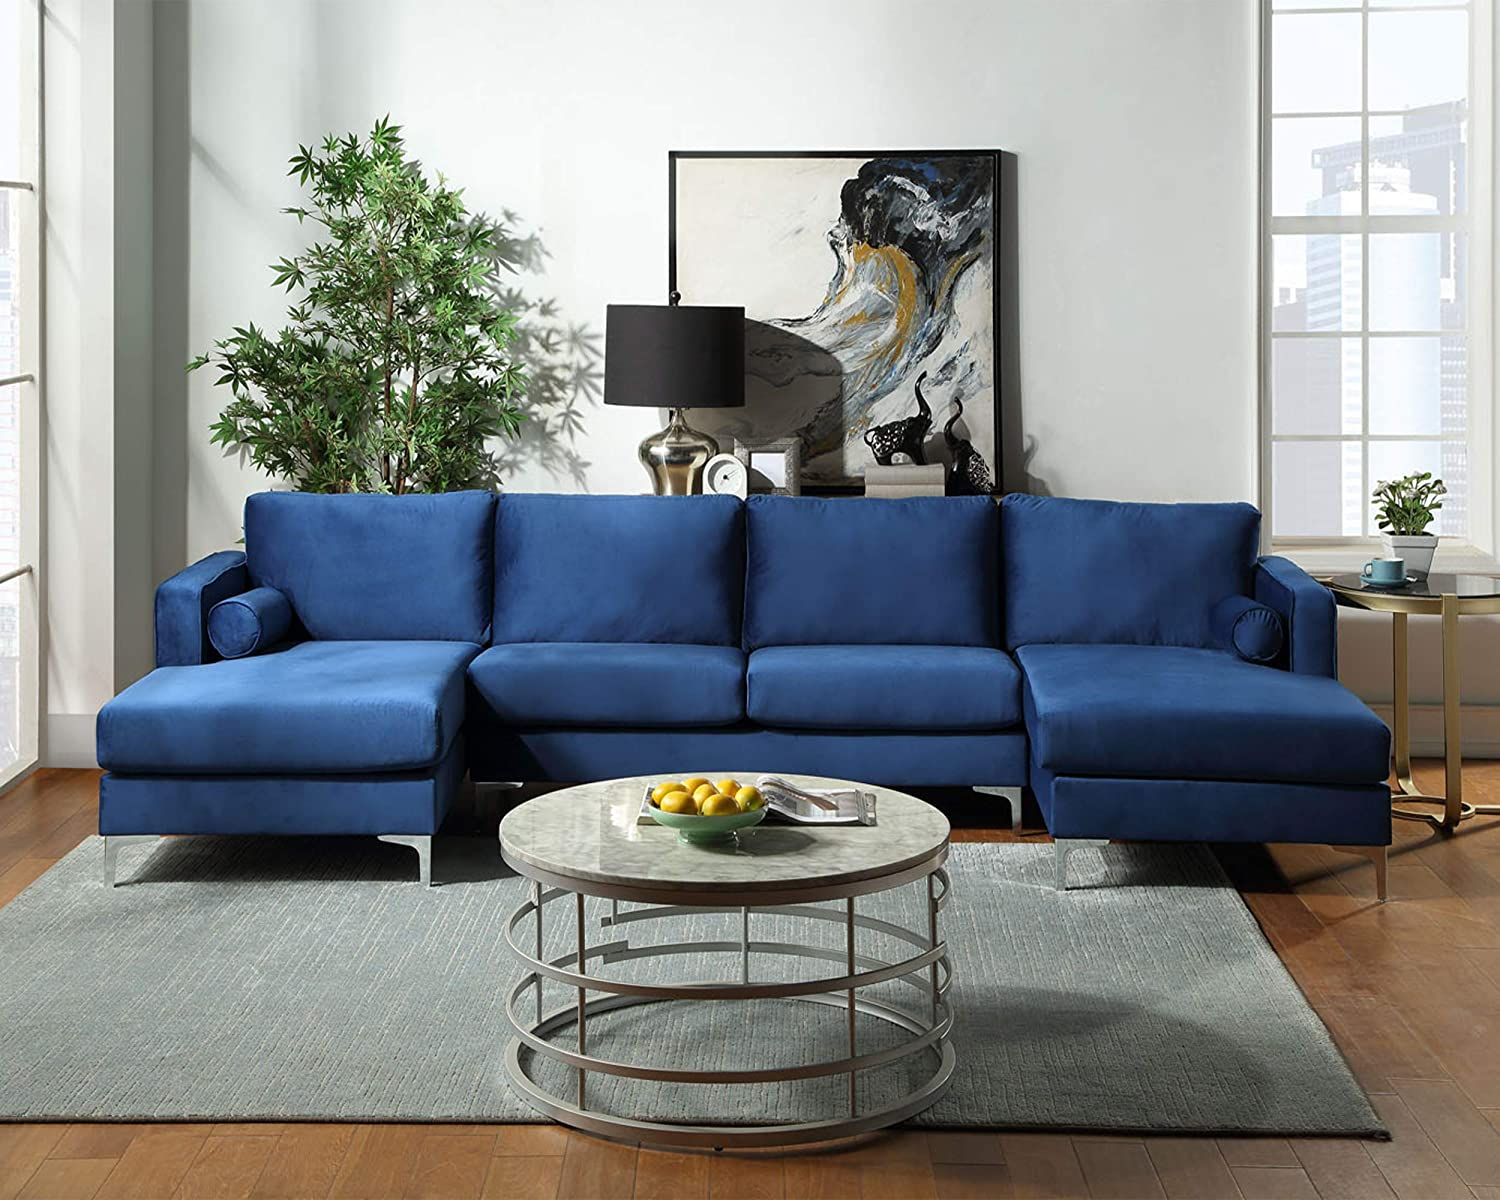 GAOPAN Modern Upholstered Soft Velvet Fabric 4 Seater U-Shape Sectional Sofa Set with Two Pillows and Double Extra Wide Chaise Lounge Couch for Home Conversation & Living Room Furniture,Blue